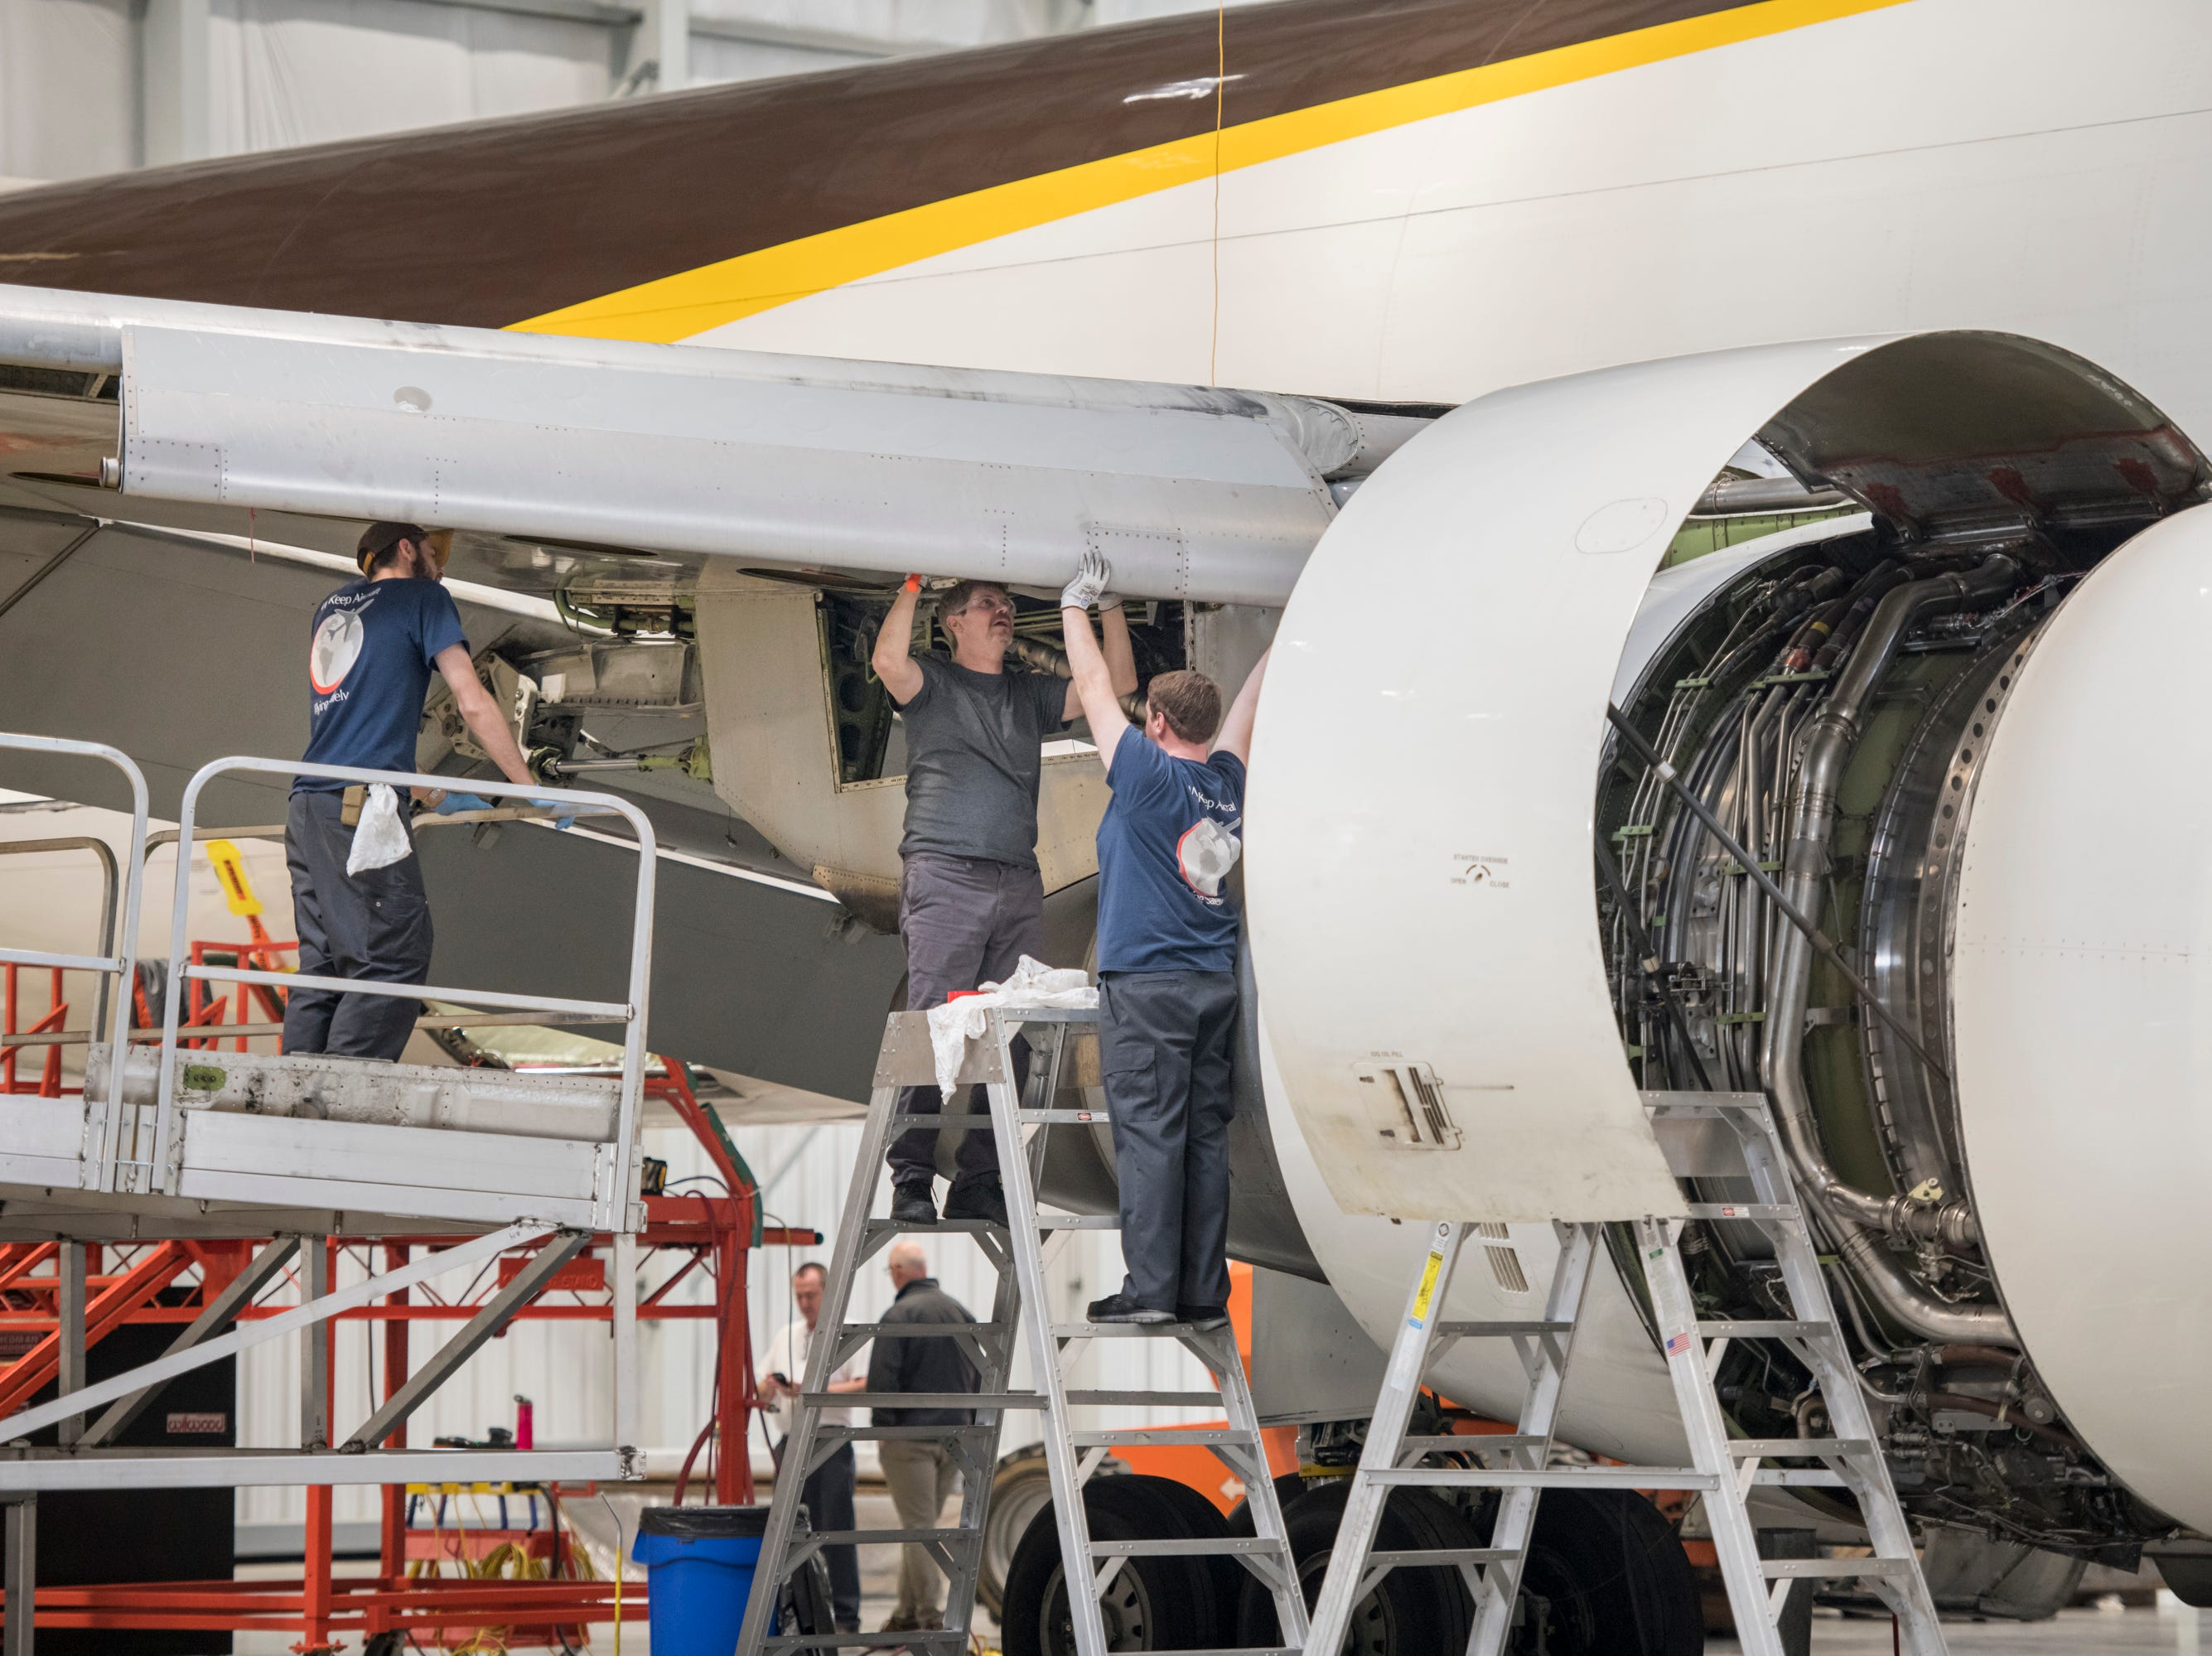 Mechanics work on an airplane at ST Engineering at the Pensacola International Airport in Pensacola on Friday, February 8, 2019.